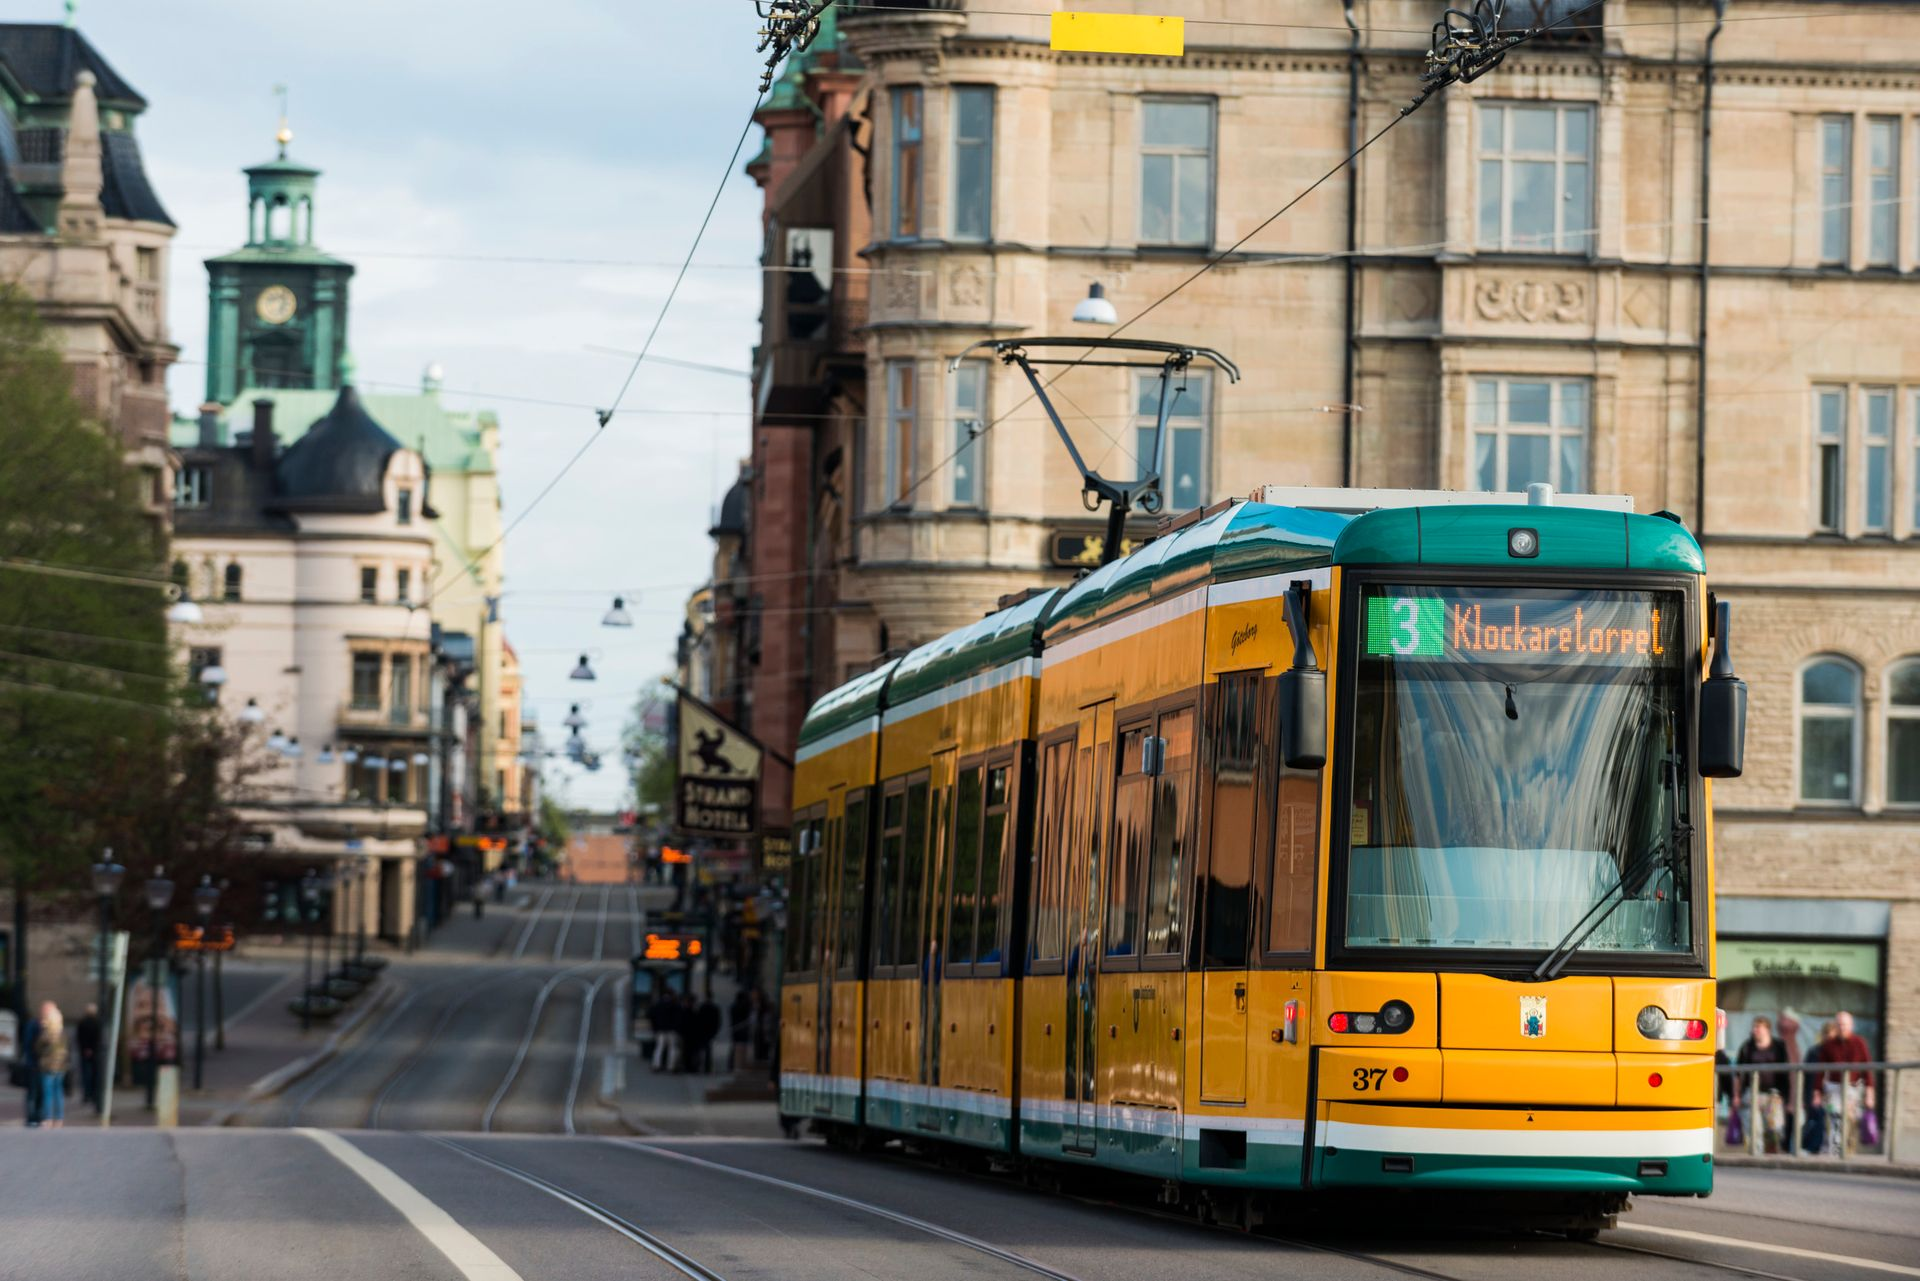 A green and yellow tram.